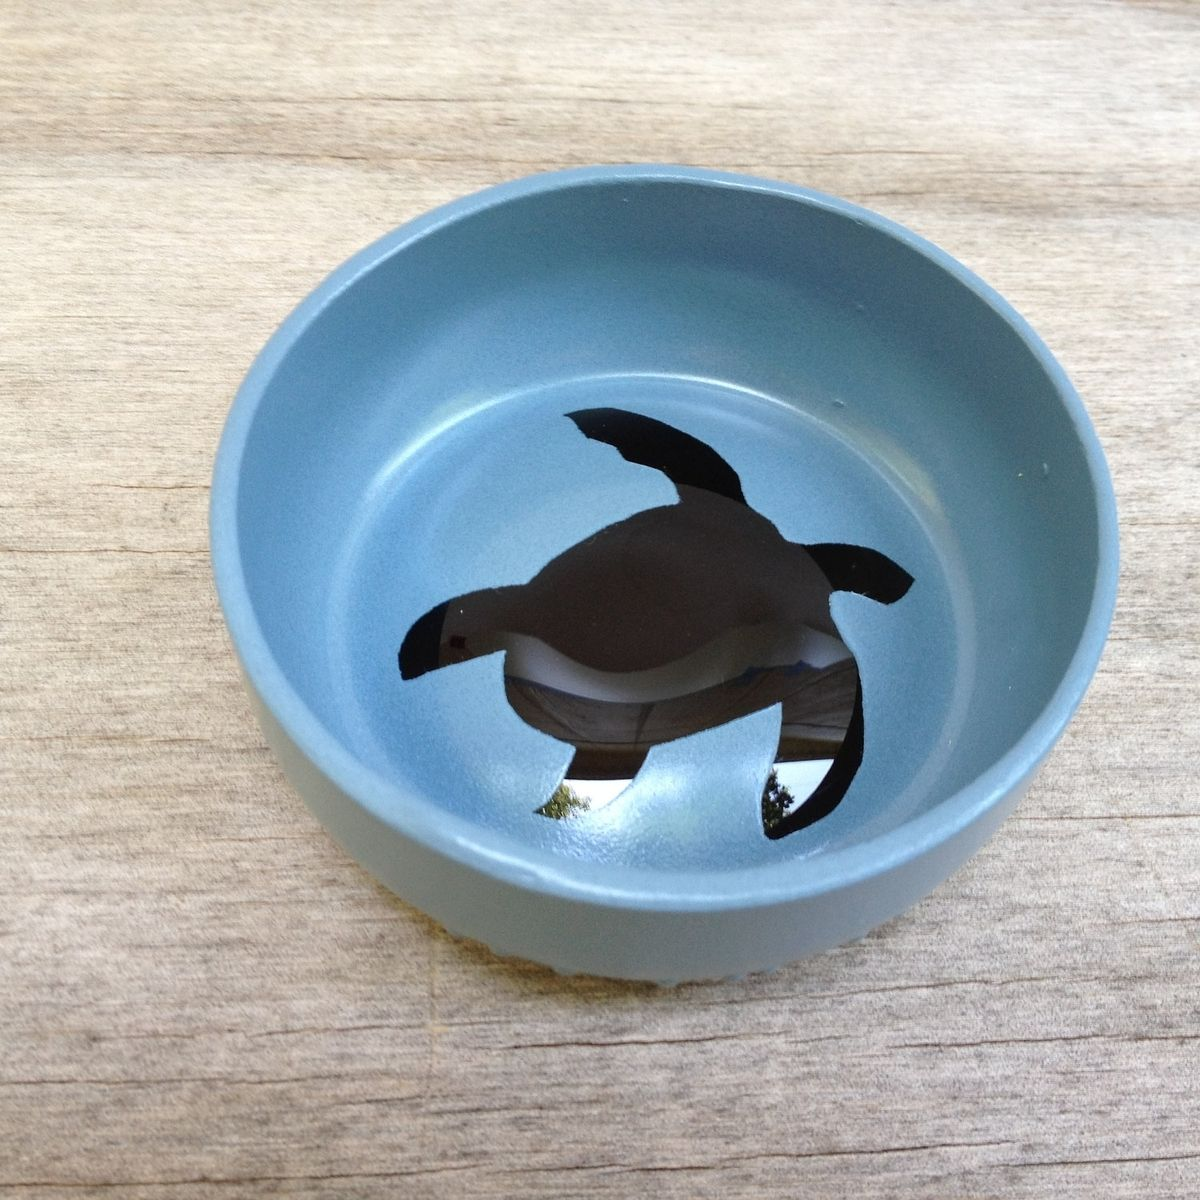 made ring holder dish jewelry bowl sea turtle